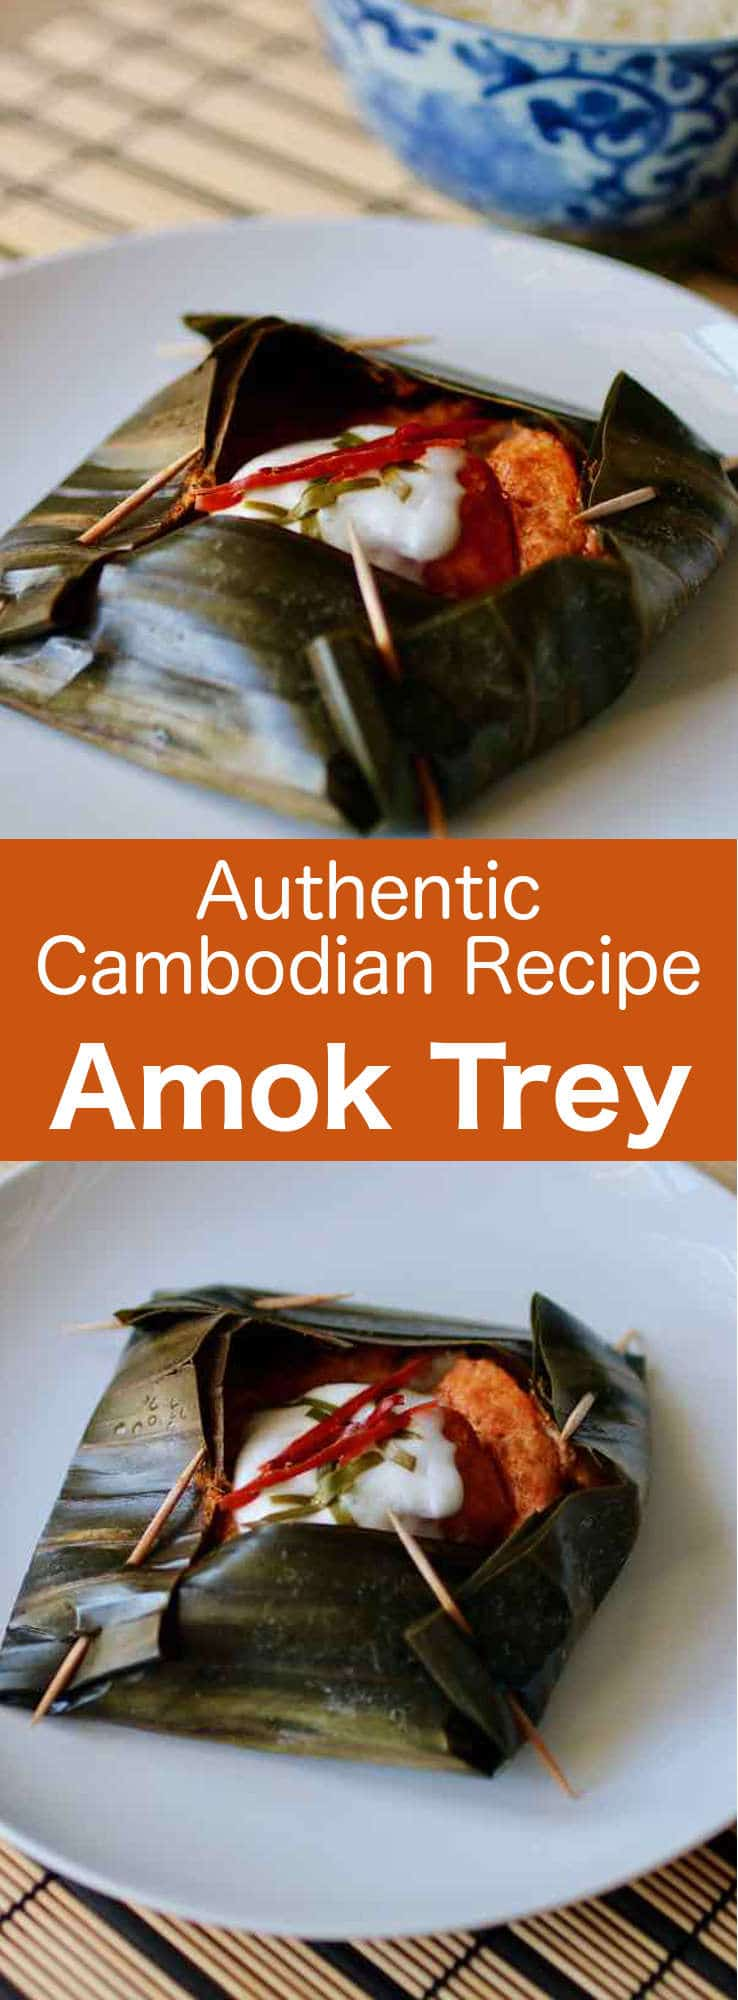 Amok trei is fish coated in thick coconut milk, steamed or baked in a basket made from banana leaves, often eaten during the Cambodian Water Festival. #Cambodia #CambodianCuisine #Cambodian #CambodianWaterFestival #BonOmTouk #196flavors